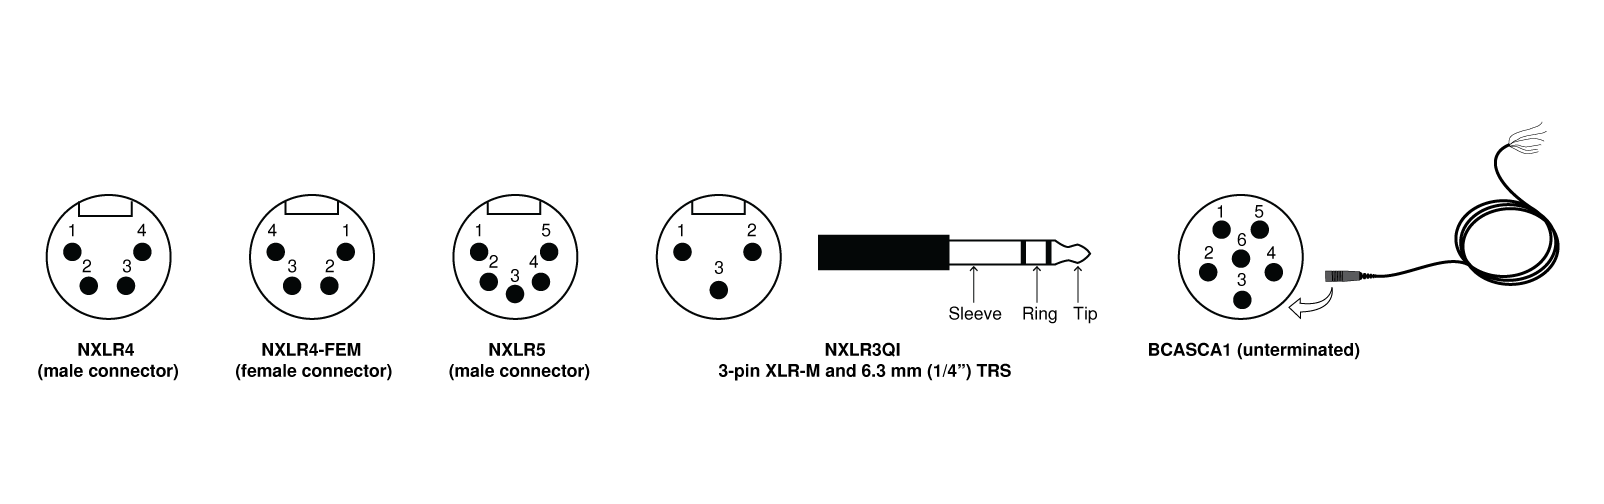 hight resolution of connector pin diagram